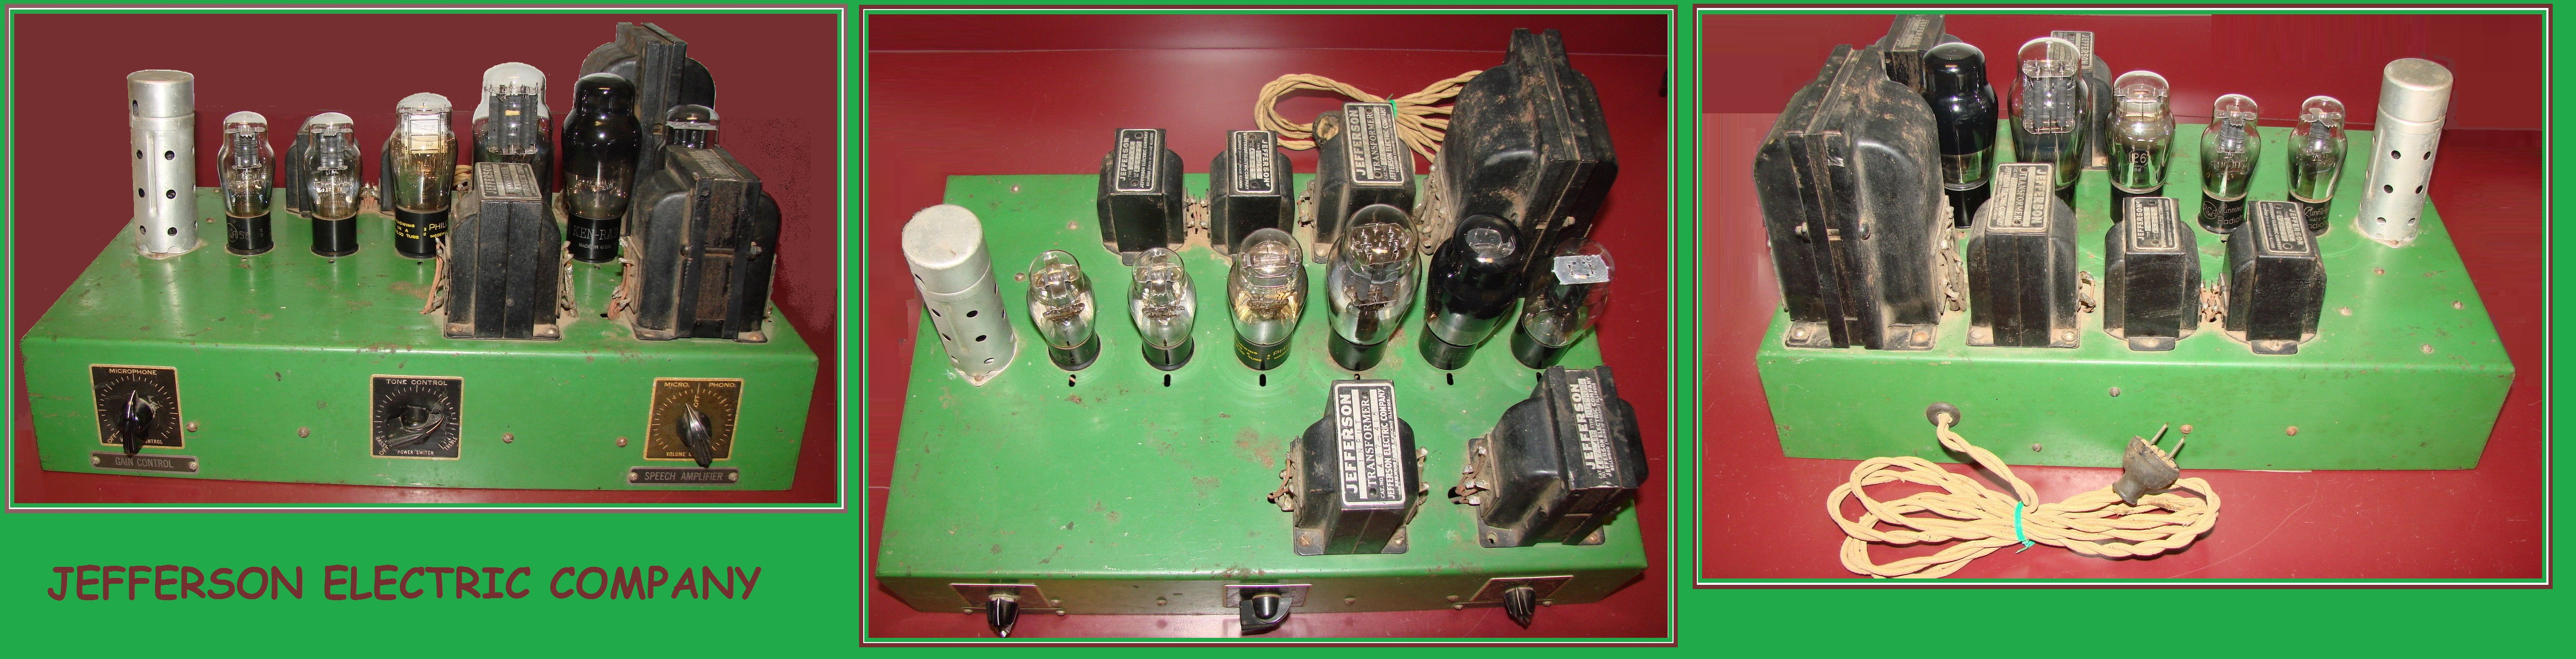 100 Amplifiers Part 1 1916 45 Lilienthal Engineering Fig 6 Equivalent Circuit Of The Resistancecoupled Amplifier In Pix Jefferson 2a3 Amp Ed Compendium